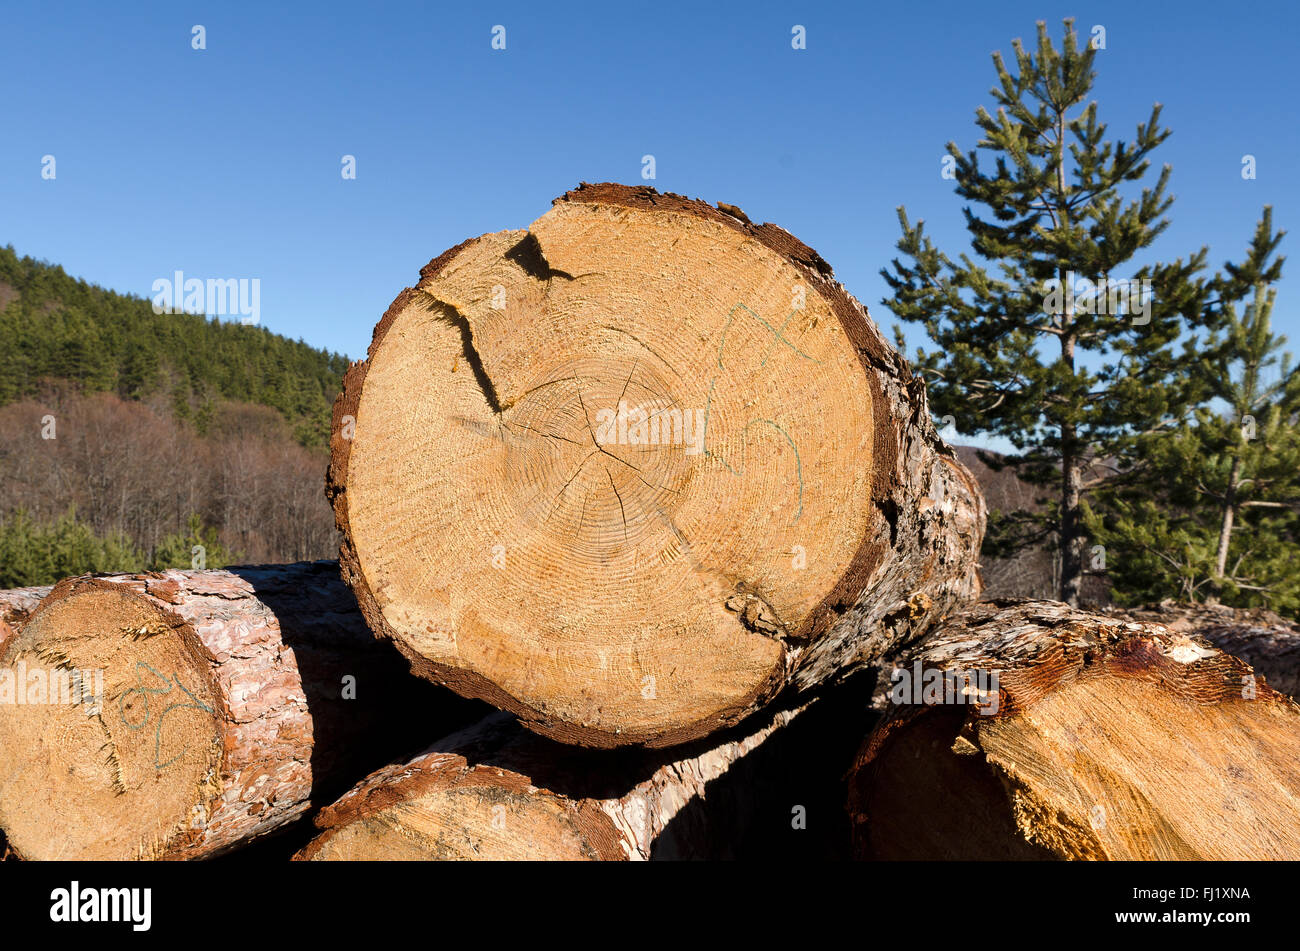 Coniferous timber in the Rhodope Mountain - Stock Image